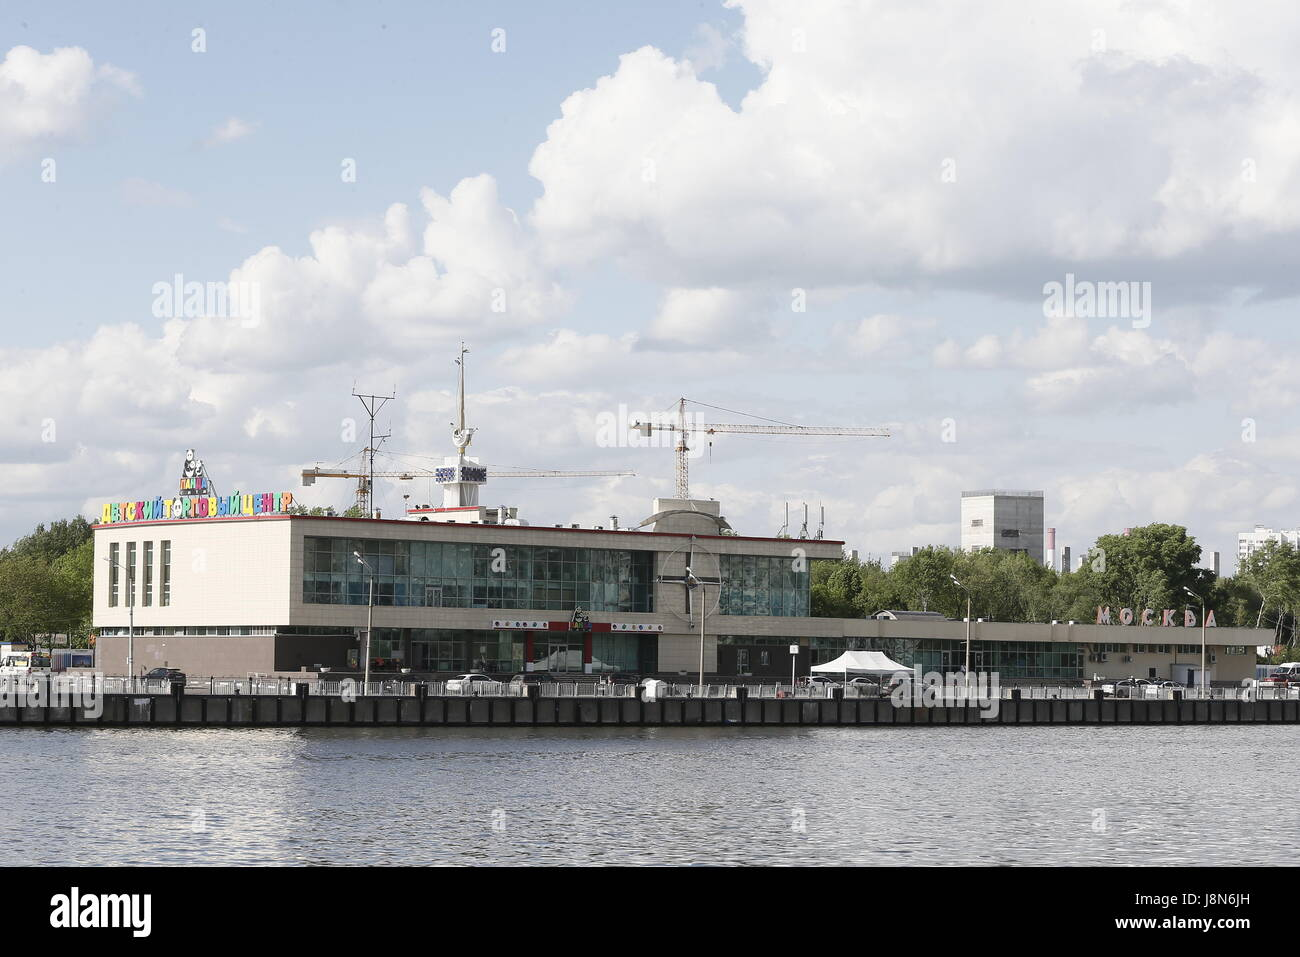 MOSCOW, RUSSIA - MAY 26, 2017: The building of Yuzhny River Passenger Terminal on the Moskva River; the Moscow Arbitration - Stock Image